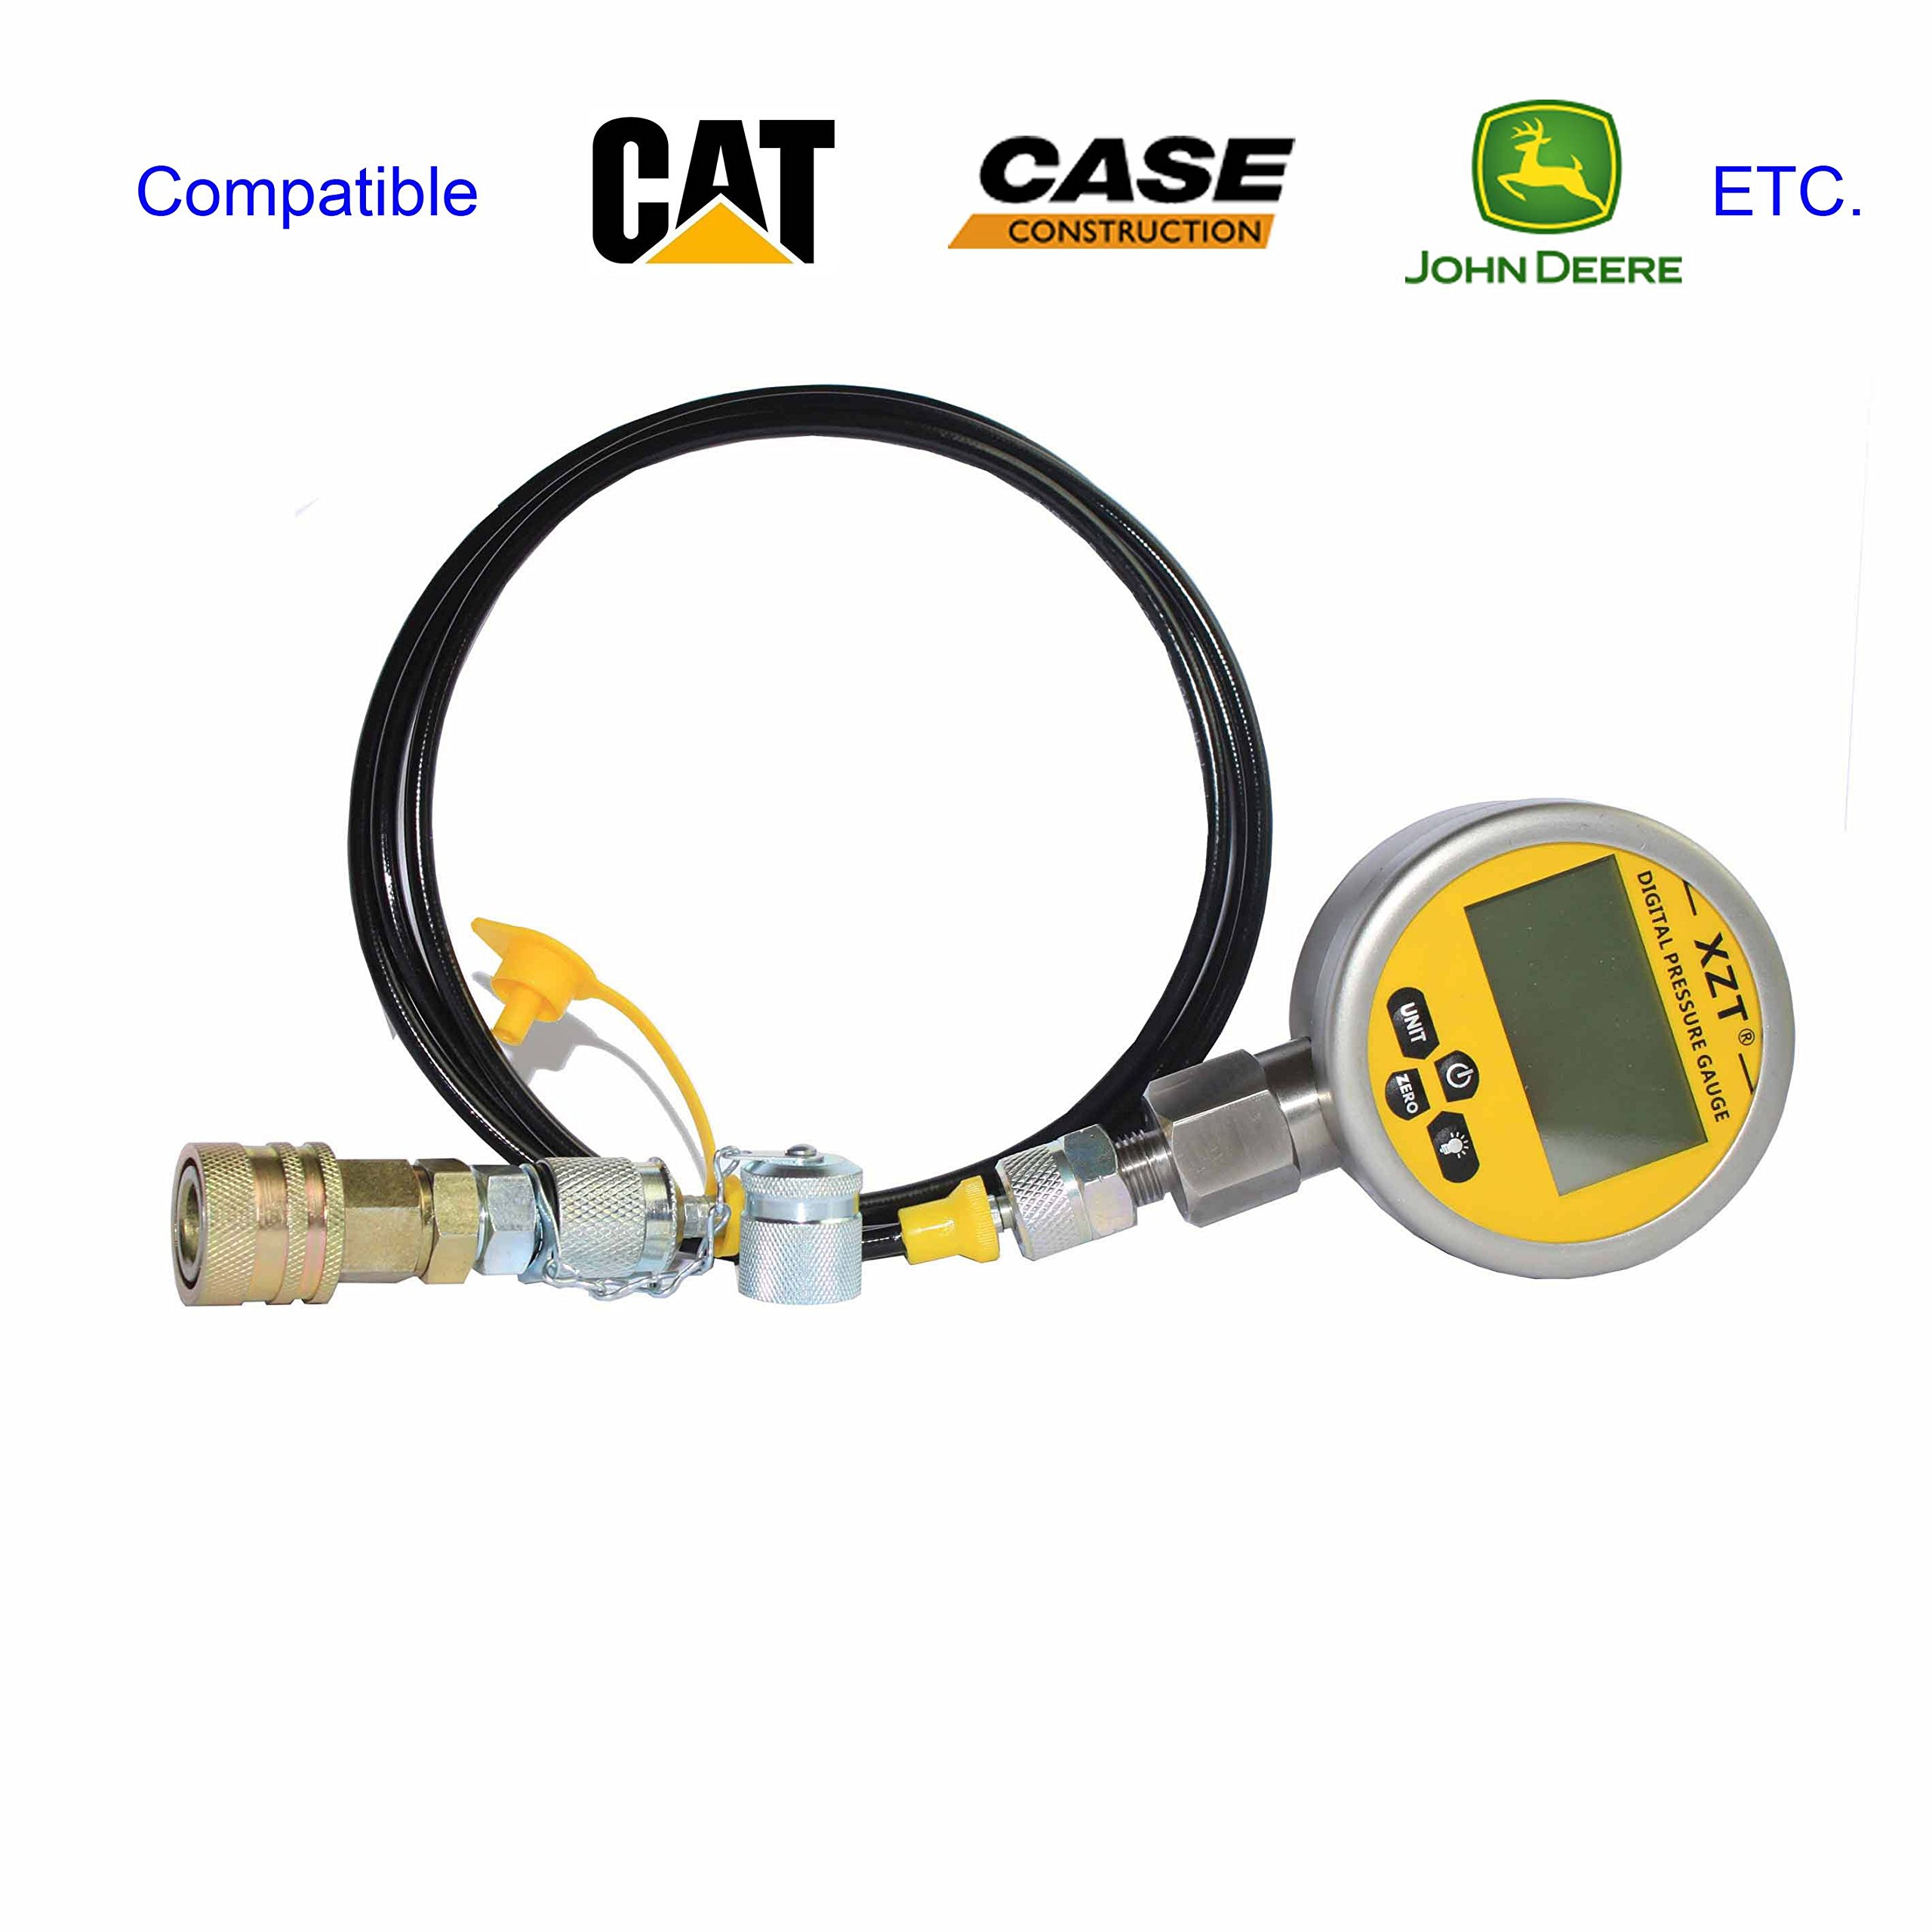 XZT Cat-10000psi Digital Hydraulic Pressure Test Coupling Kit for Excavator Construction Machinery (10000PSI)